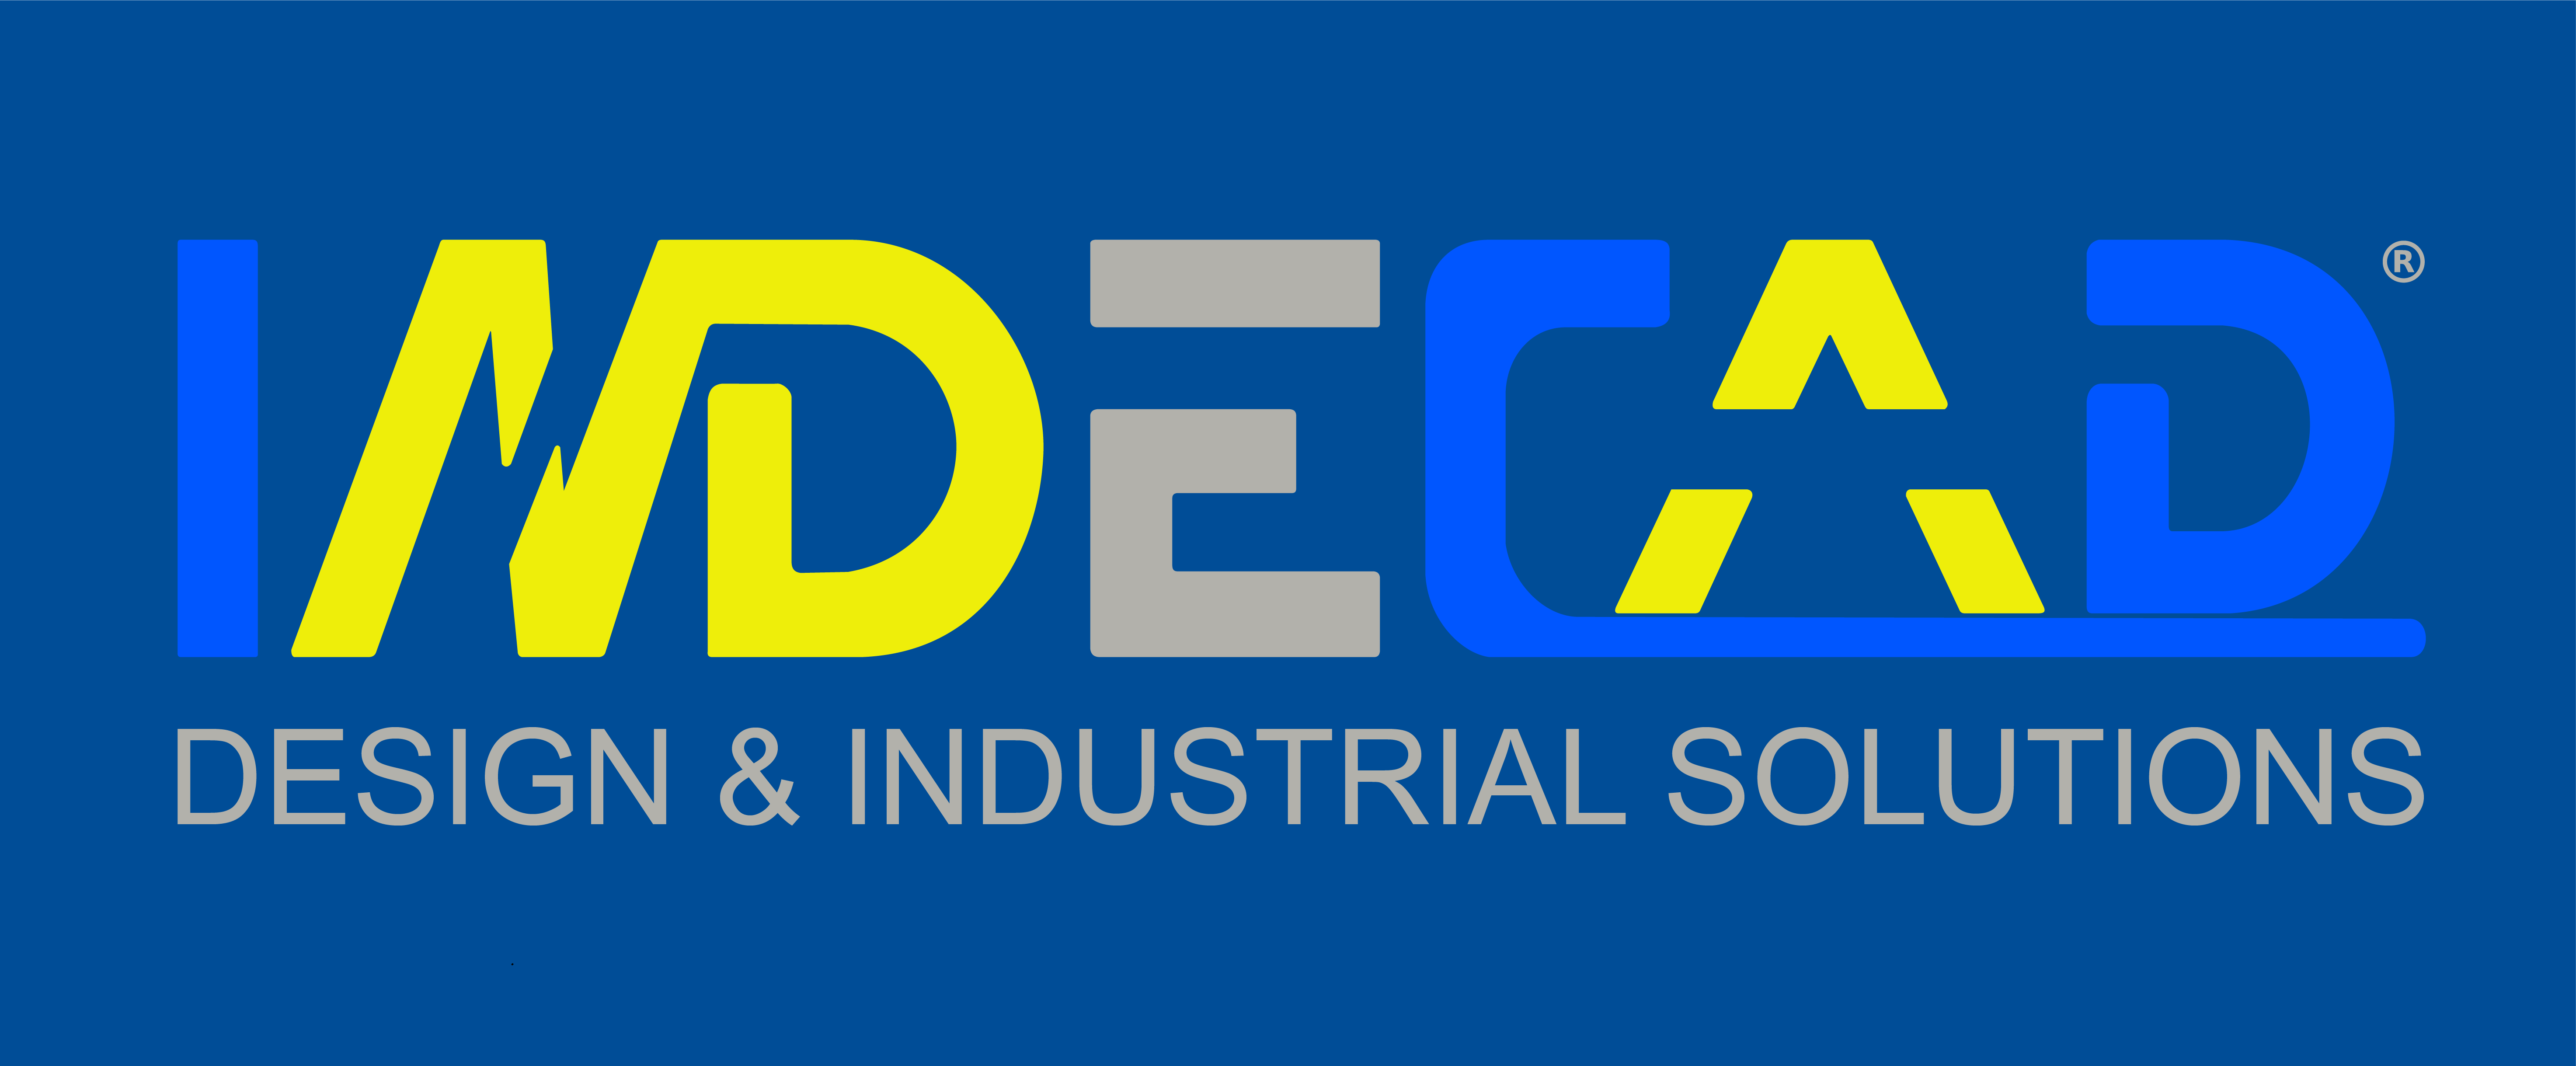 indecad solutions